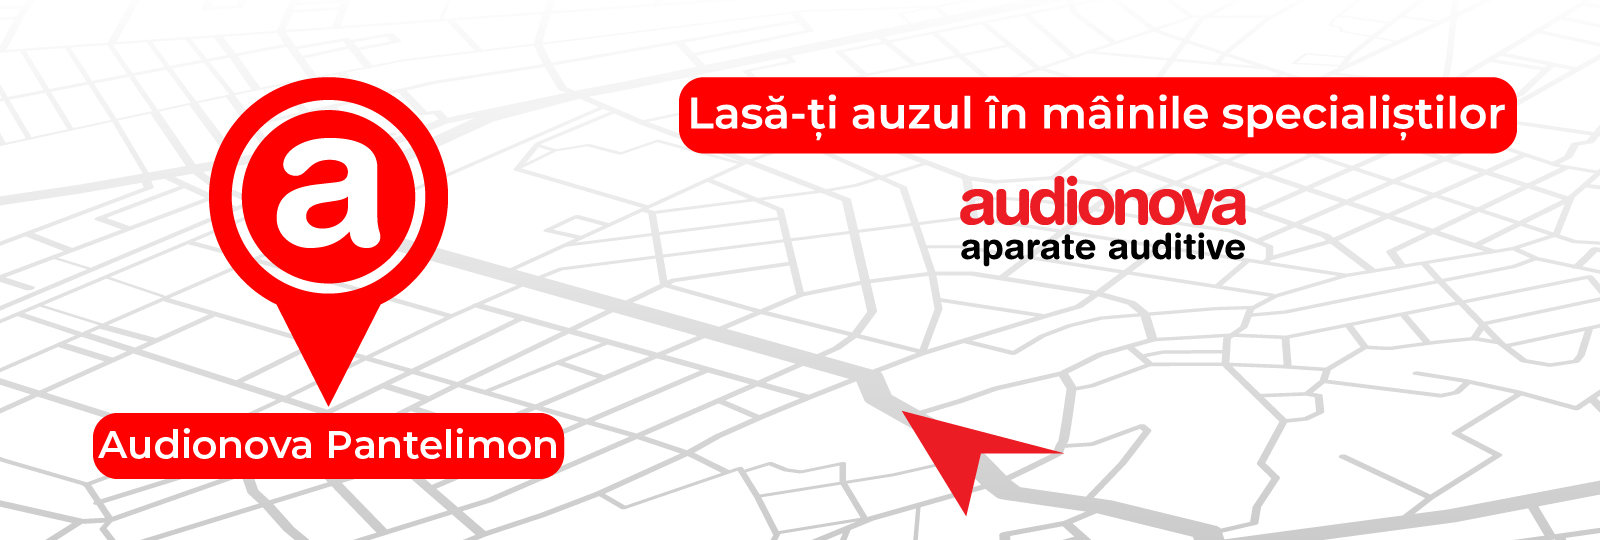 aparate auditive bucuresti pantelimon